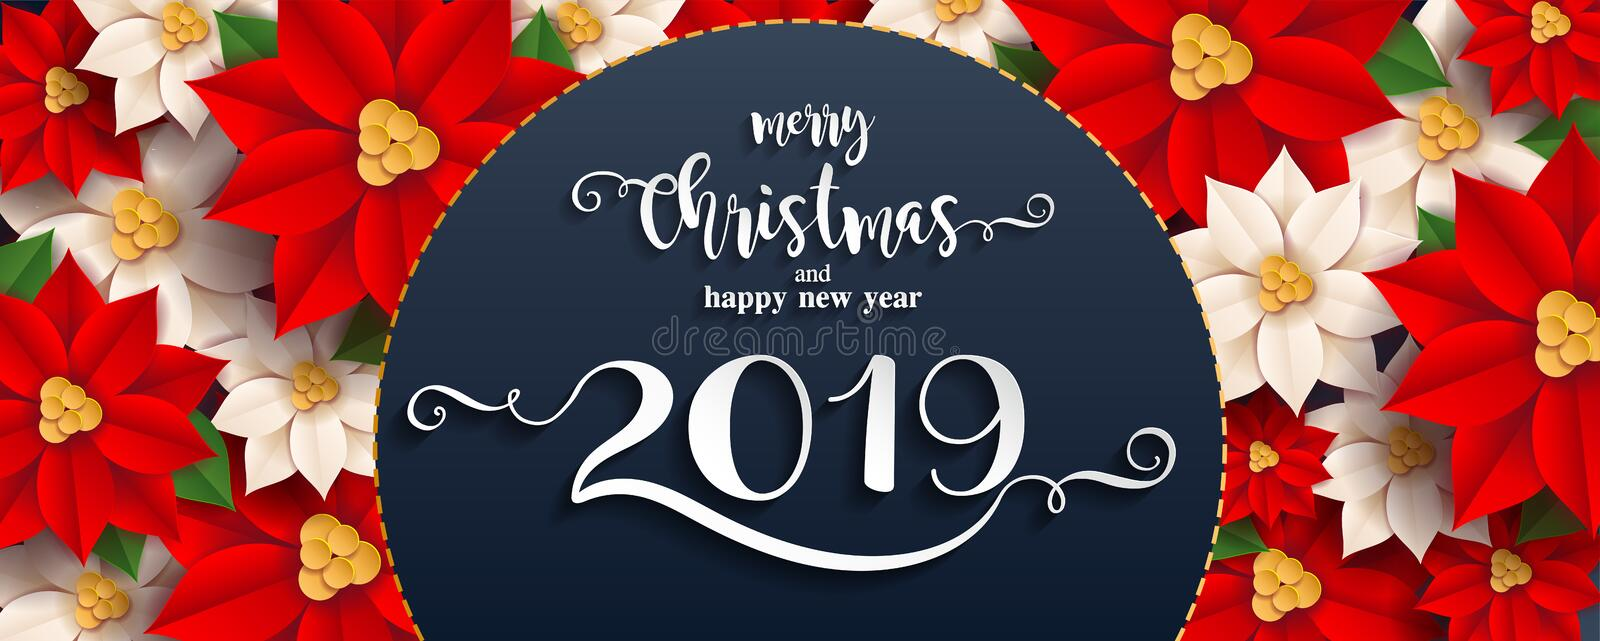 Merry Christmas And Happy New Year 2019. stock illustration